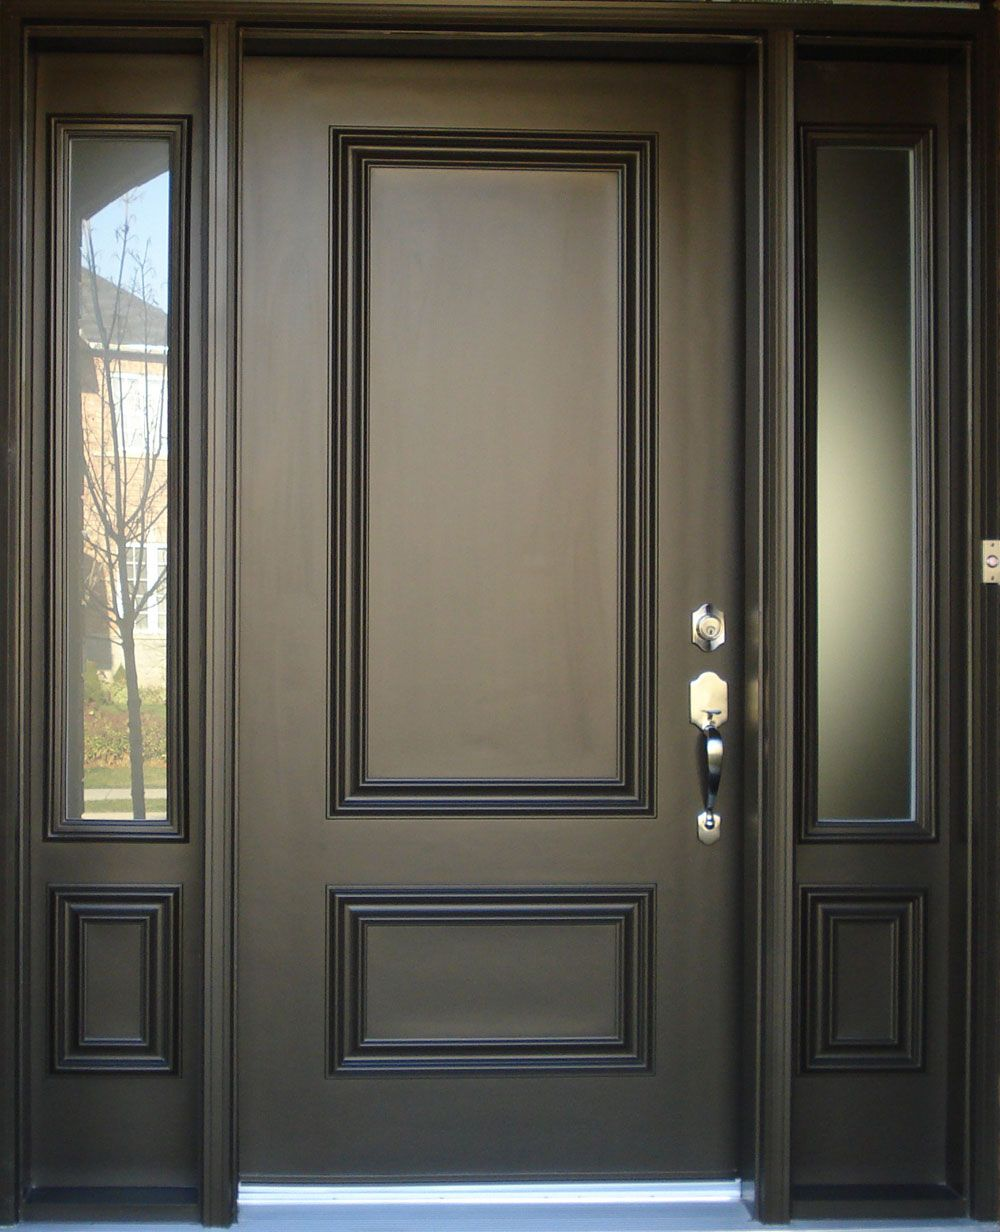 This Is Our New Front Door   Minus The Side Windows. Inside Painted White  (trim Color.) Finally Decided On A Terra Cotta Color For The Outside.